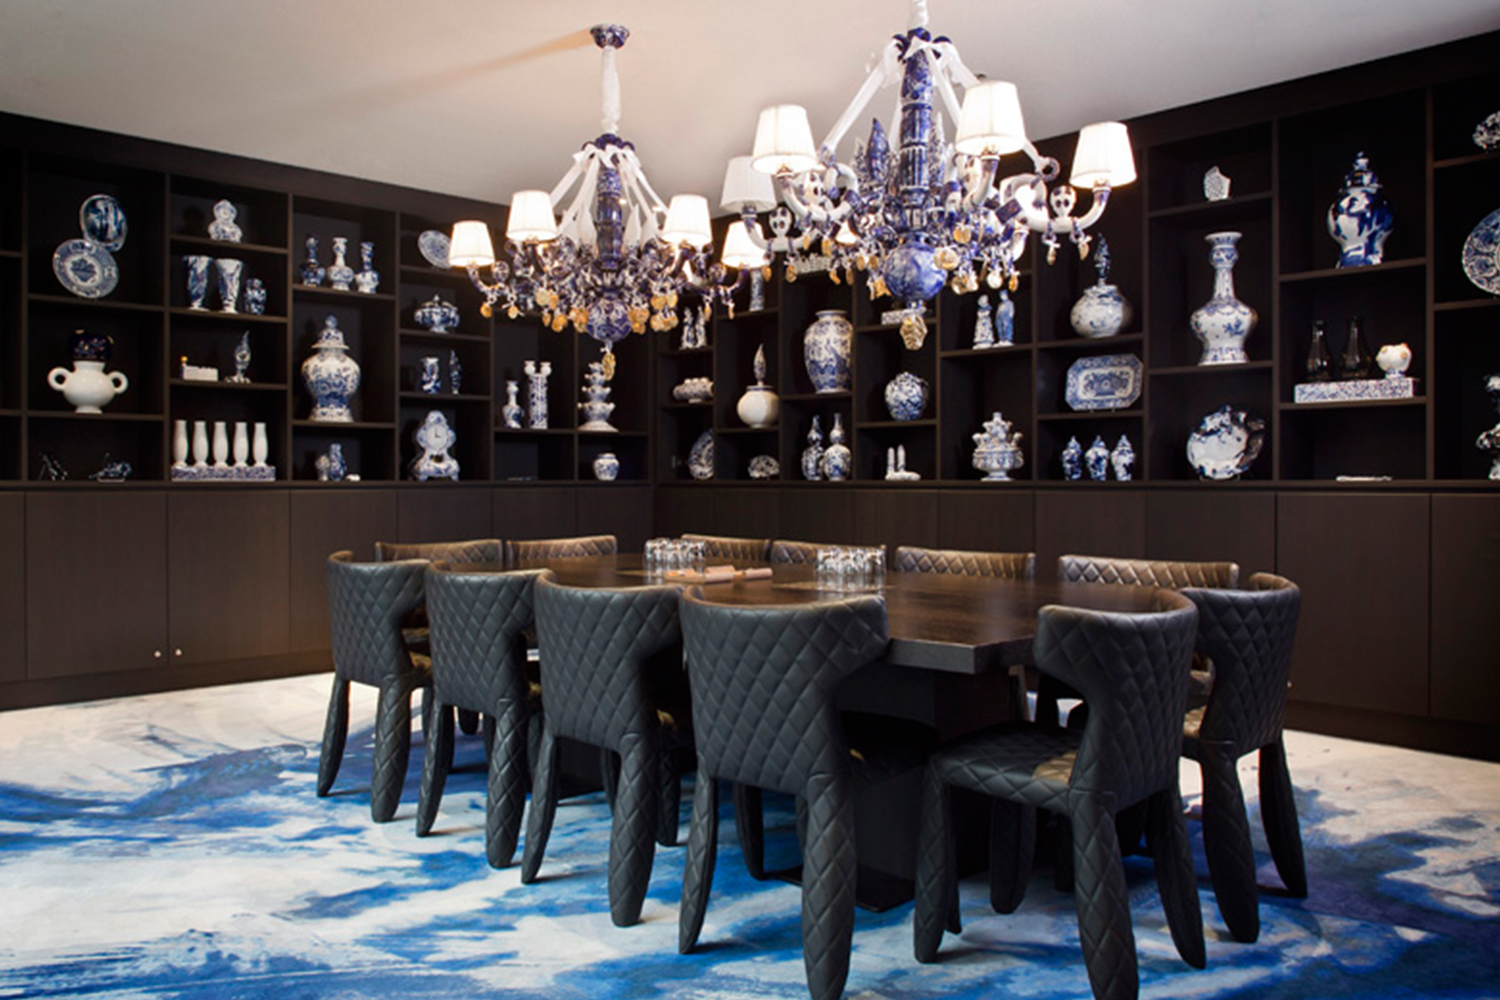 marcel wanders Luxurious Dining Room Ideas By Top Interior Designer Marcel Wanders 4 Luxurious Dining Room Ideas By Top Interior Designer Marcel Wanders 1